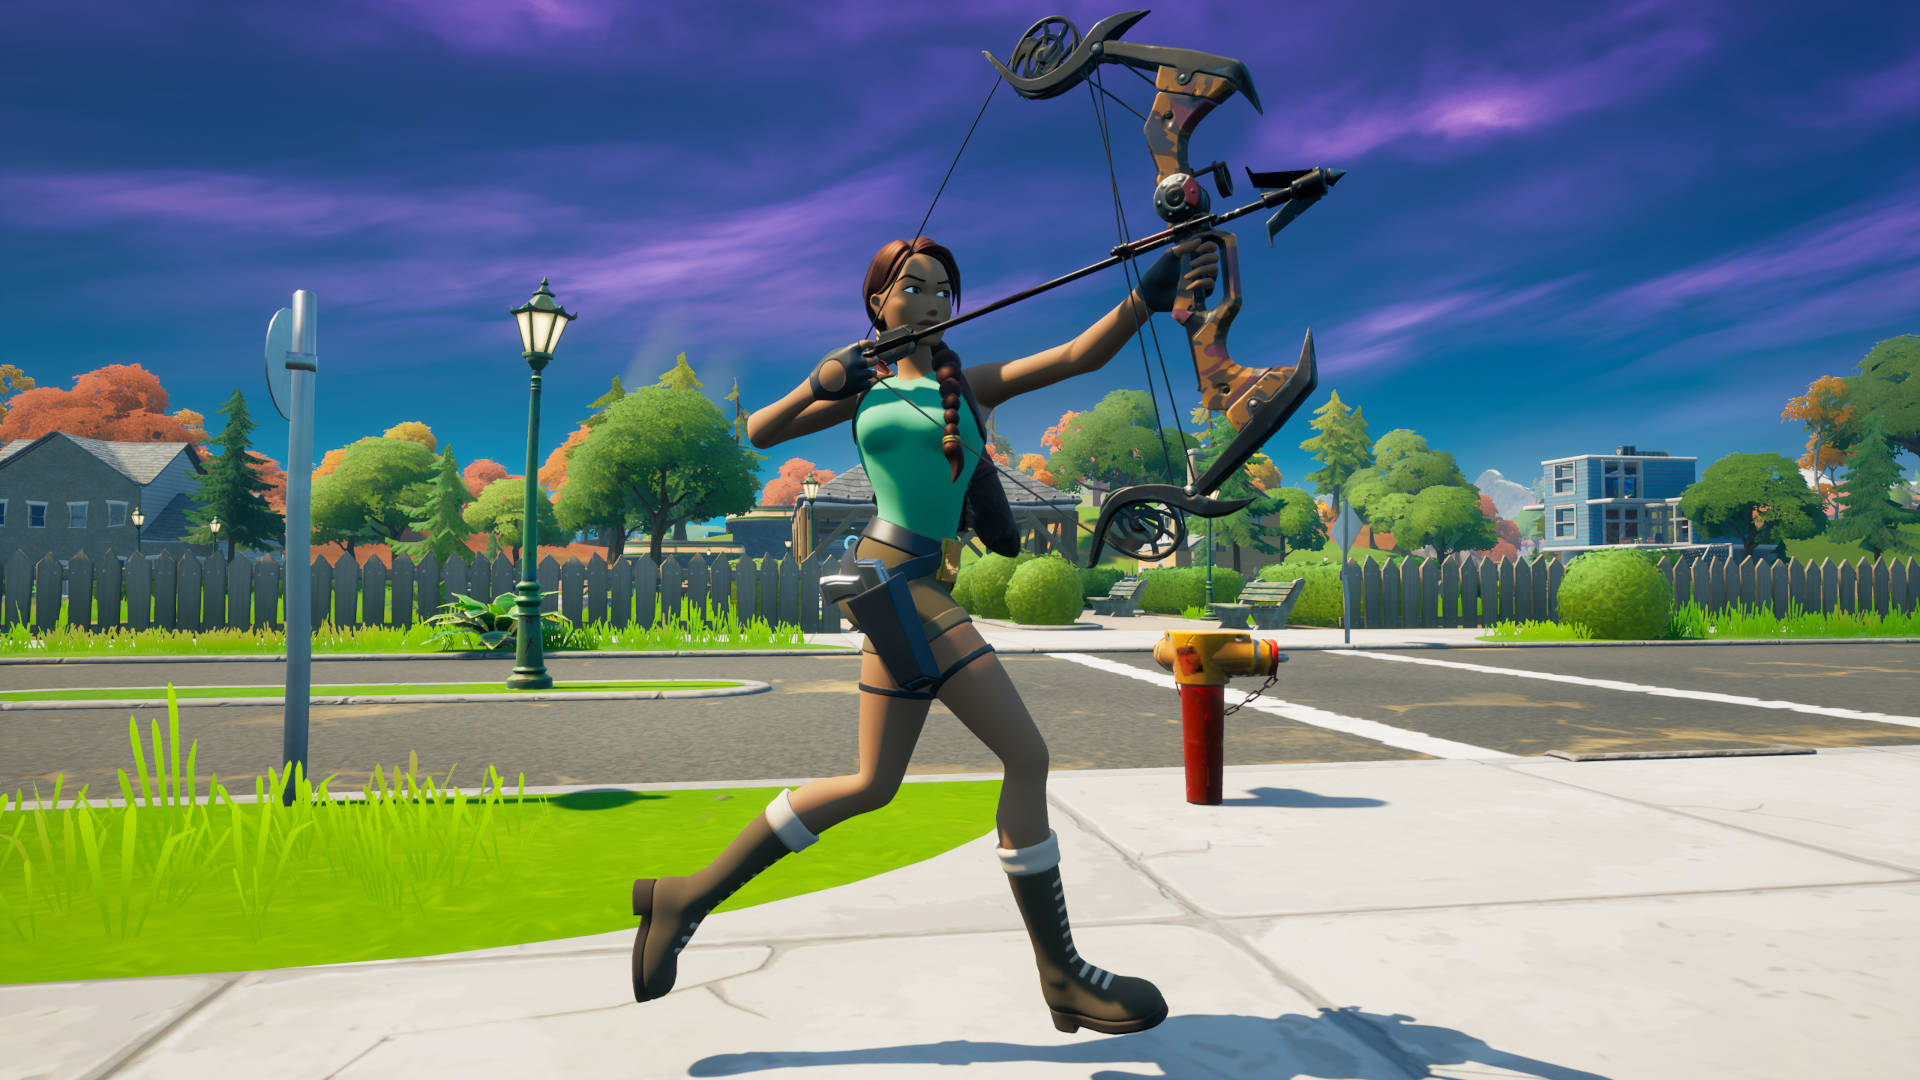 Where is Lara Croft in Fortnite – grappler bow location